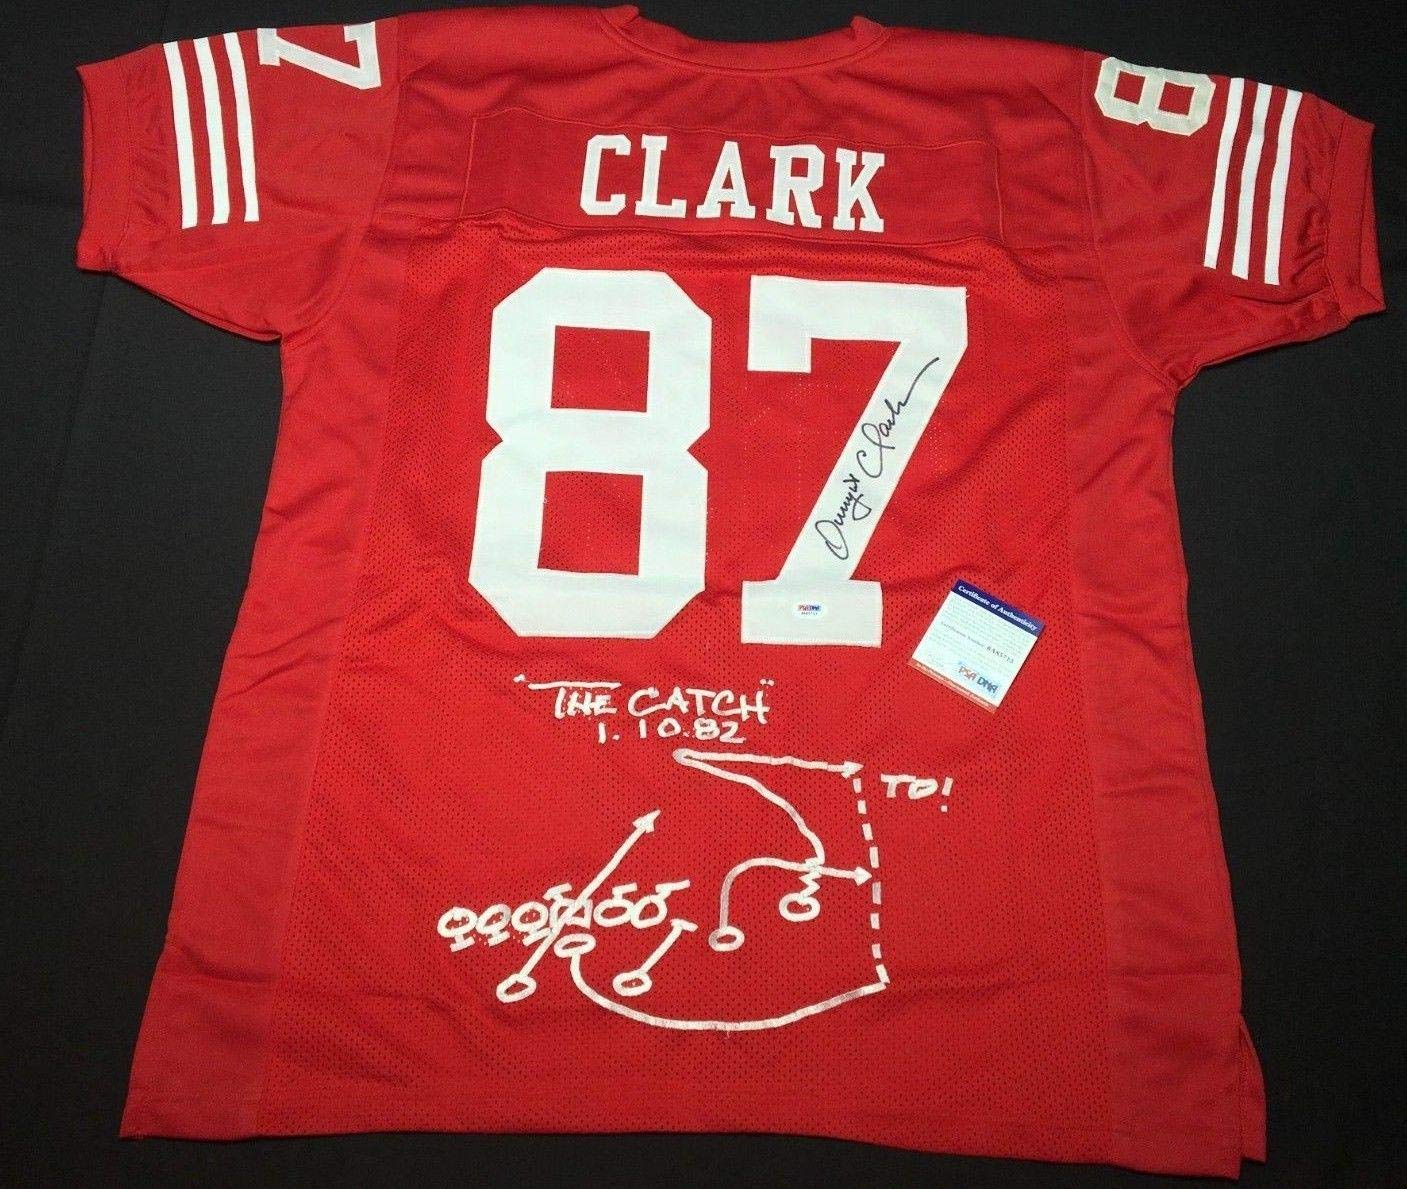 Dwight Clark Signed San Francisco 49ers Football Jersey 'The Catch'  Stitched - PSA/DNA Certified - Autographed NFL Jerseys at Amazon's Sports  Collectibles ...